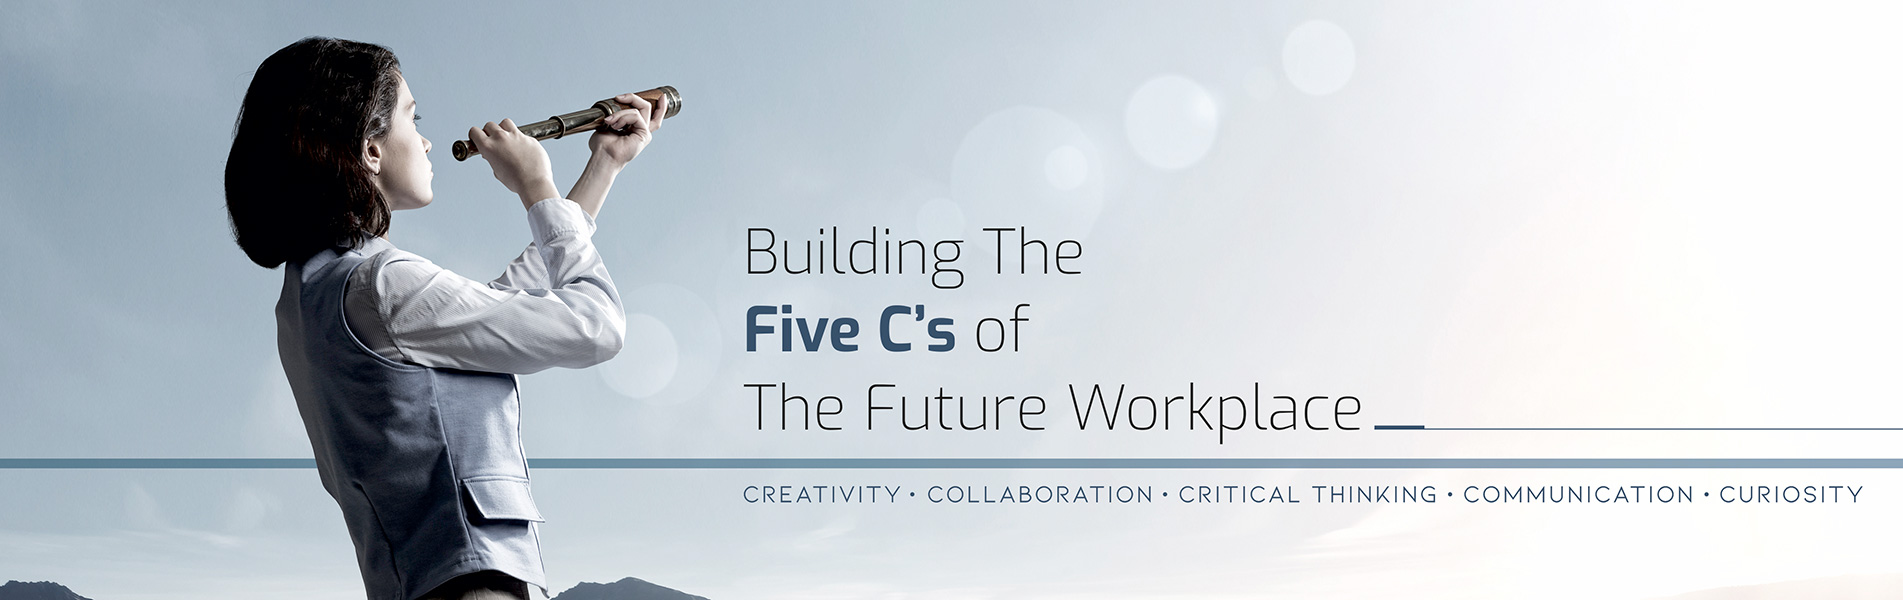 Building the five Cs of the future workplace